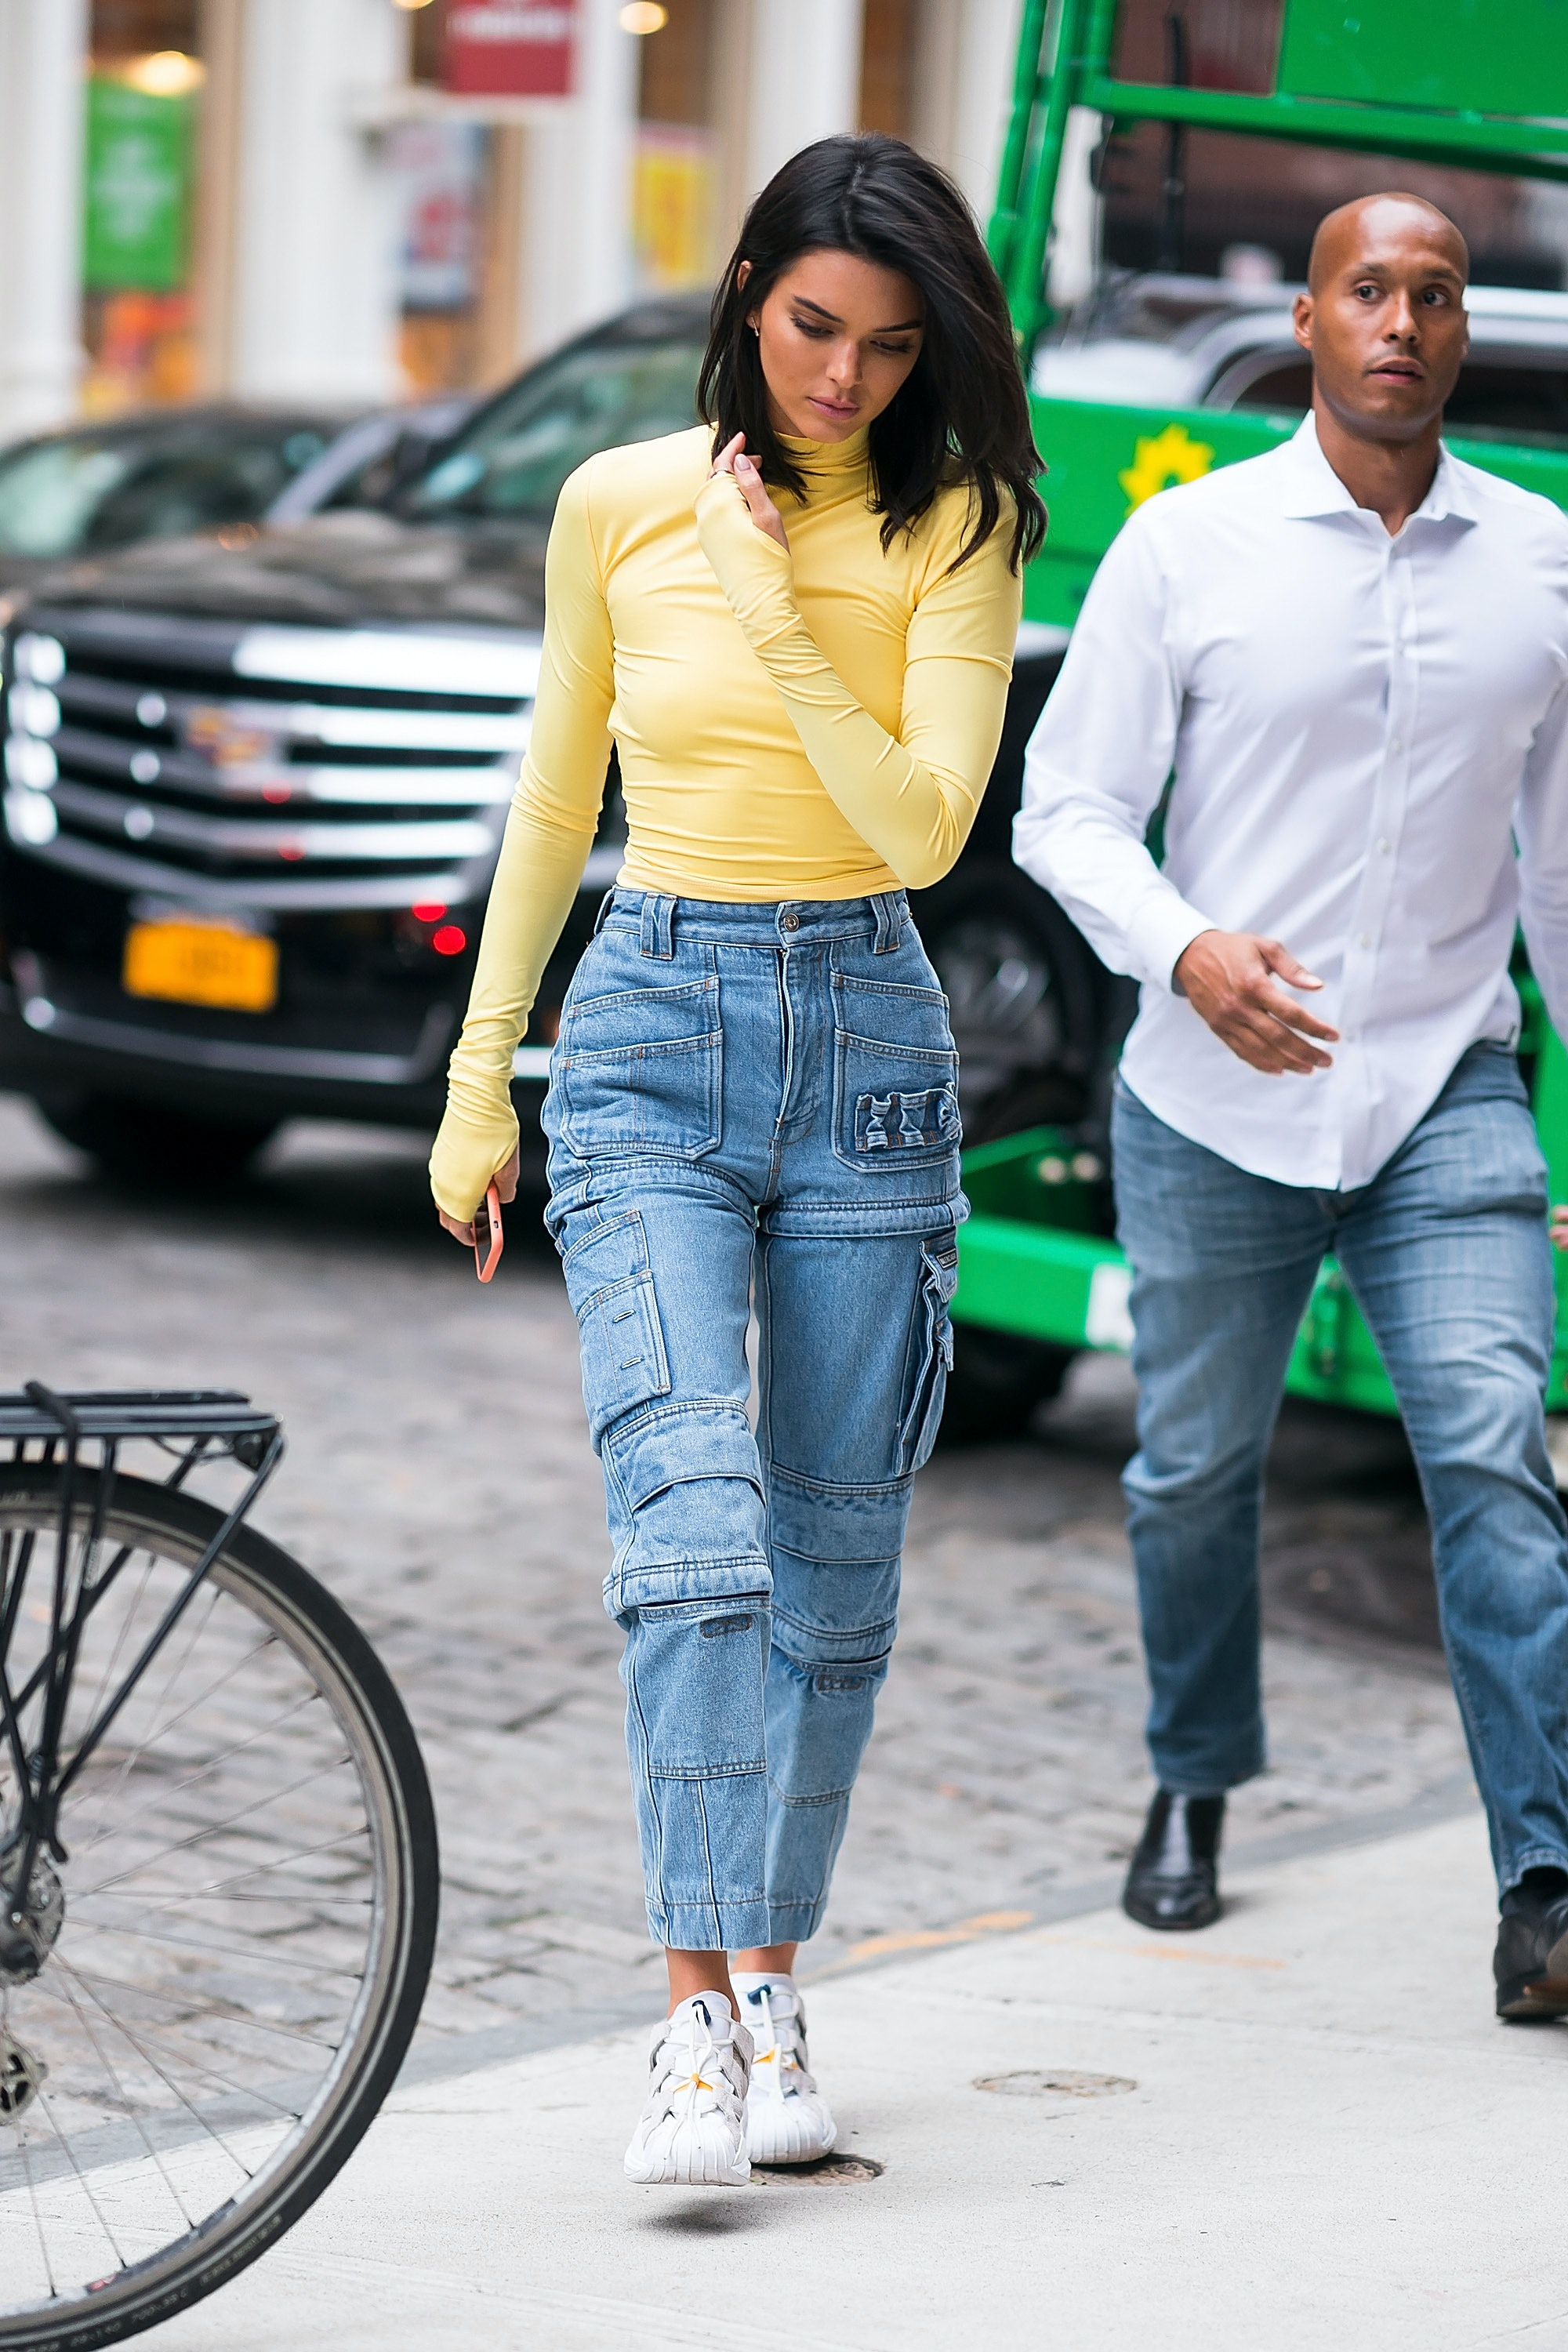 Kendall Jenner's Zip-Off Jeans Are Very